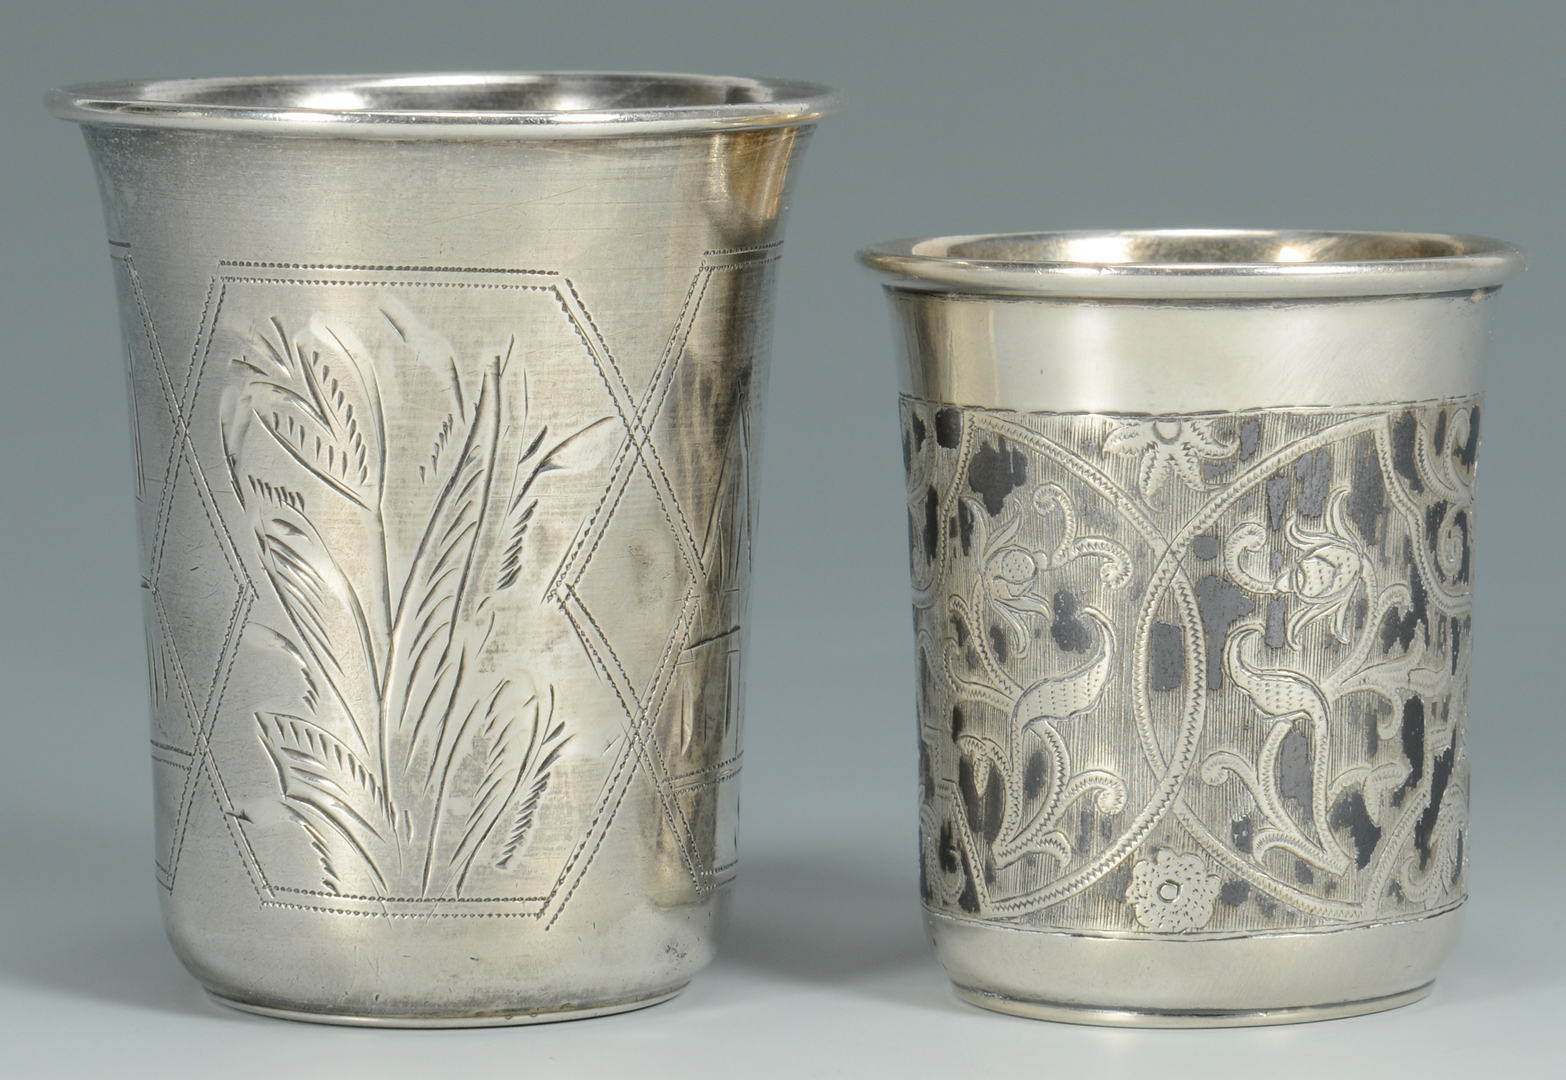 Lot 3088196: 2 Russian Silver Kiddush Cups inc. Niello and 2 Sp